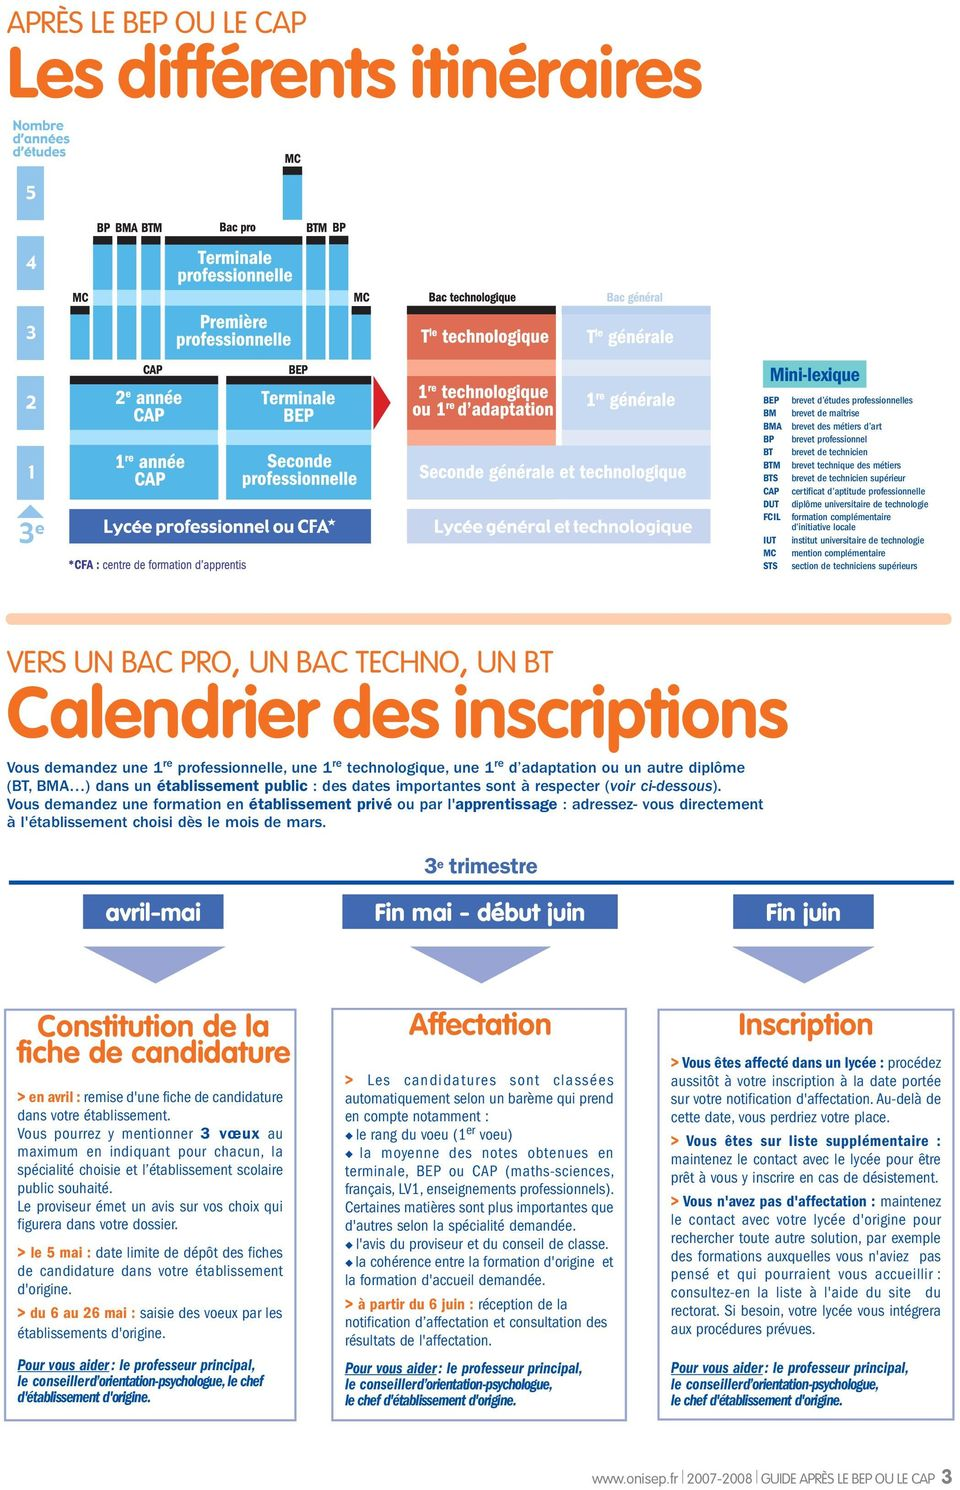 locale IUT institut universitaire de technologie MC mention complémentaire STS section de techniciens supérieurs VERS UN BAC PRO, UN BAC TECHNO, UN BT Calendrier des inscriptions Vous demandez une 1